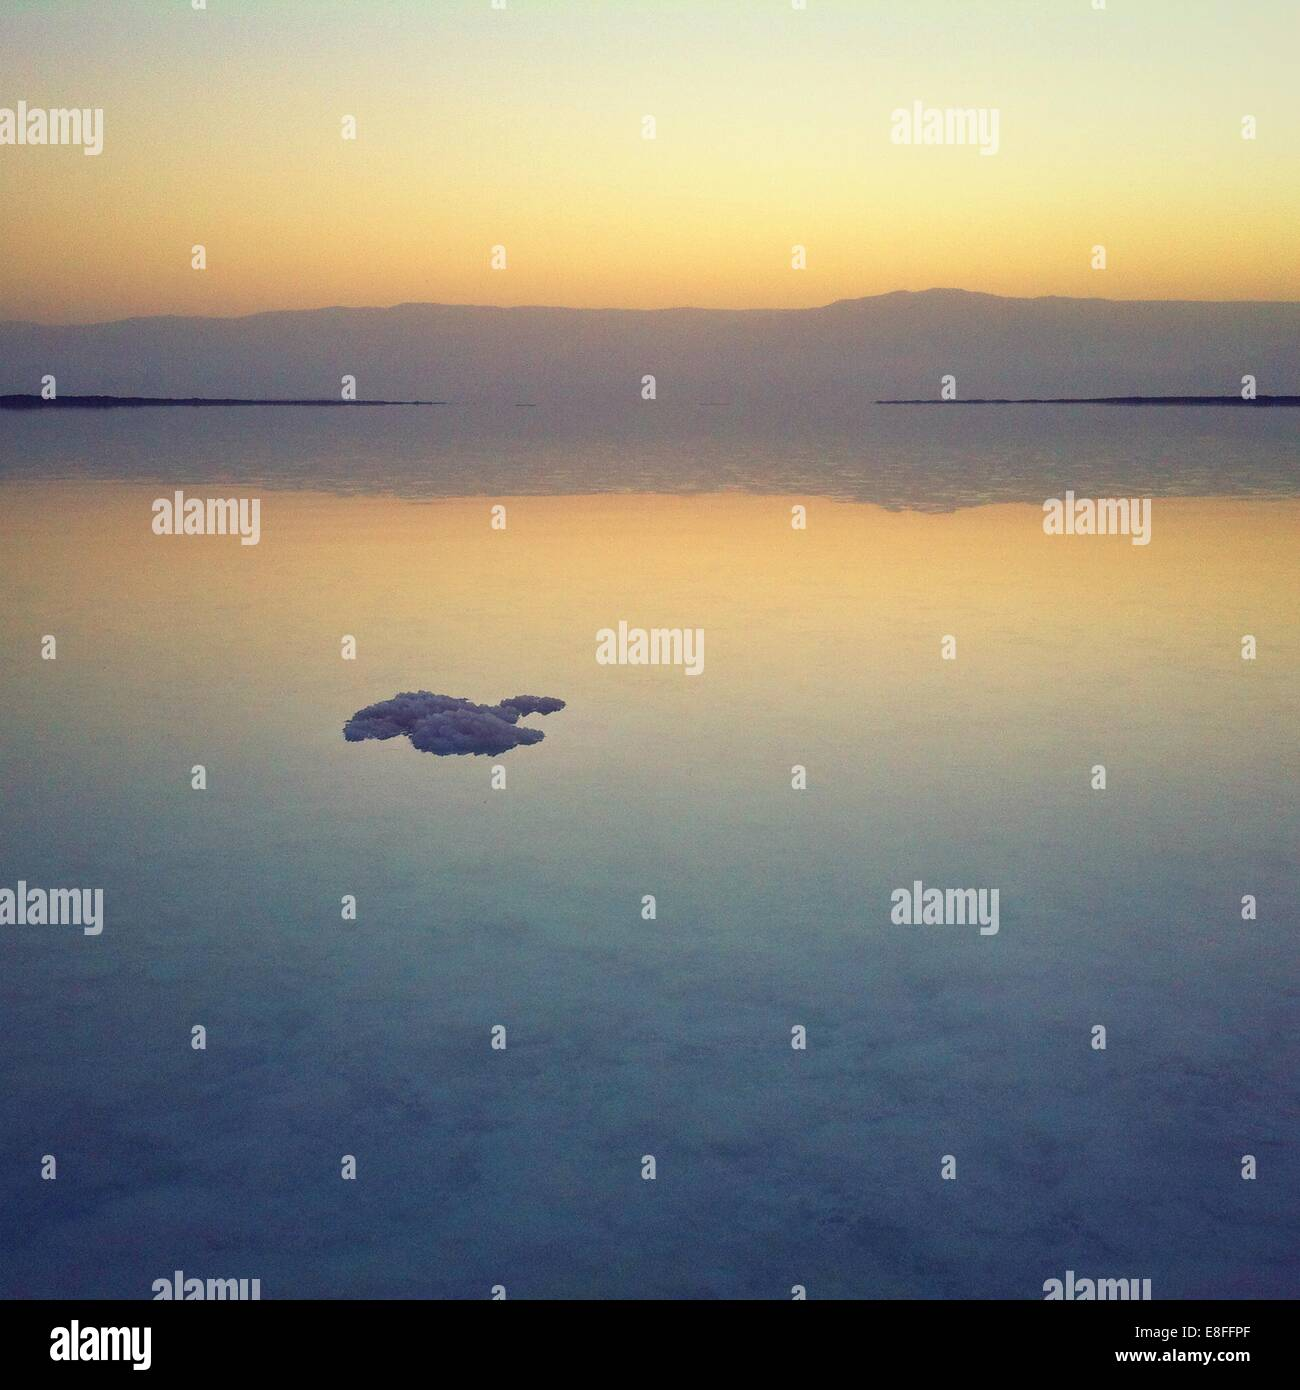 Sunrise over the Dead Sea, Israel - Stock Image